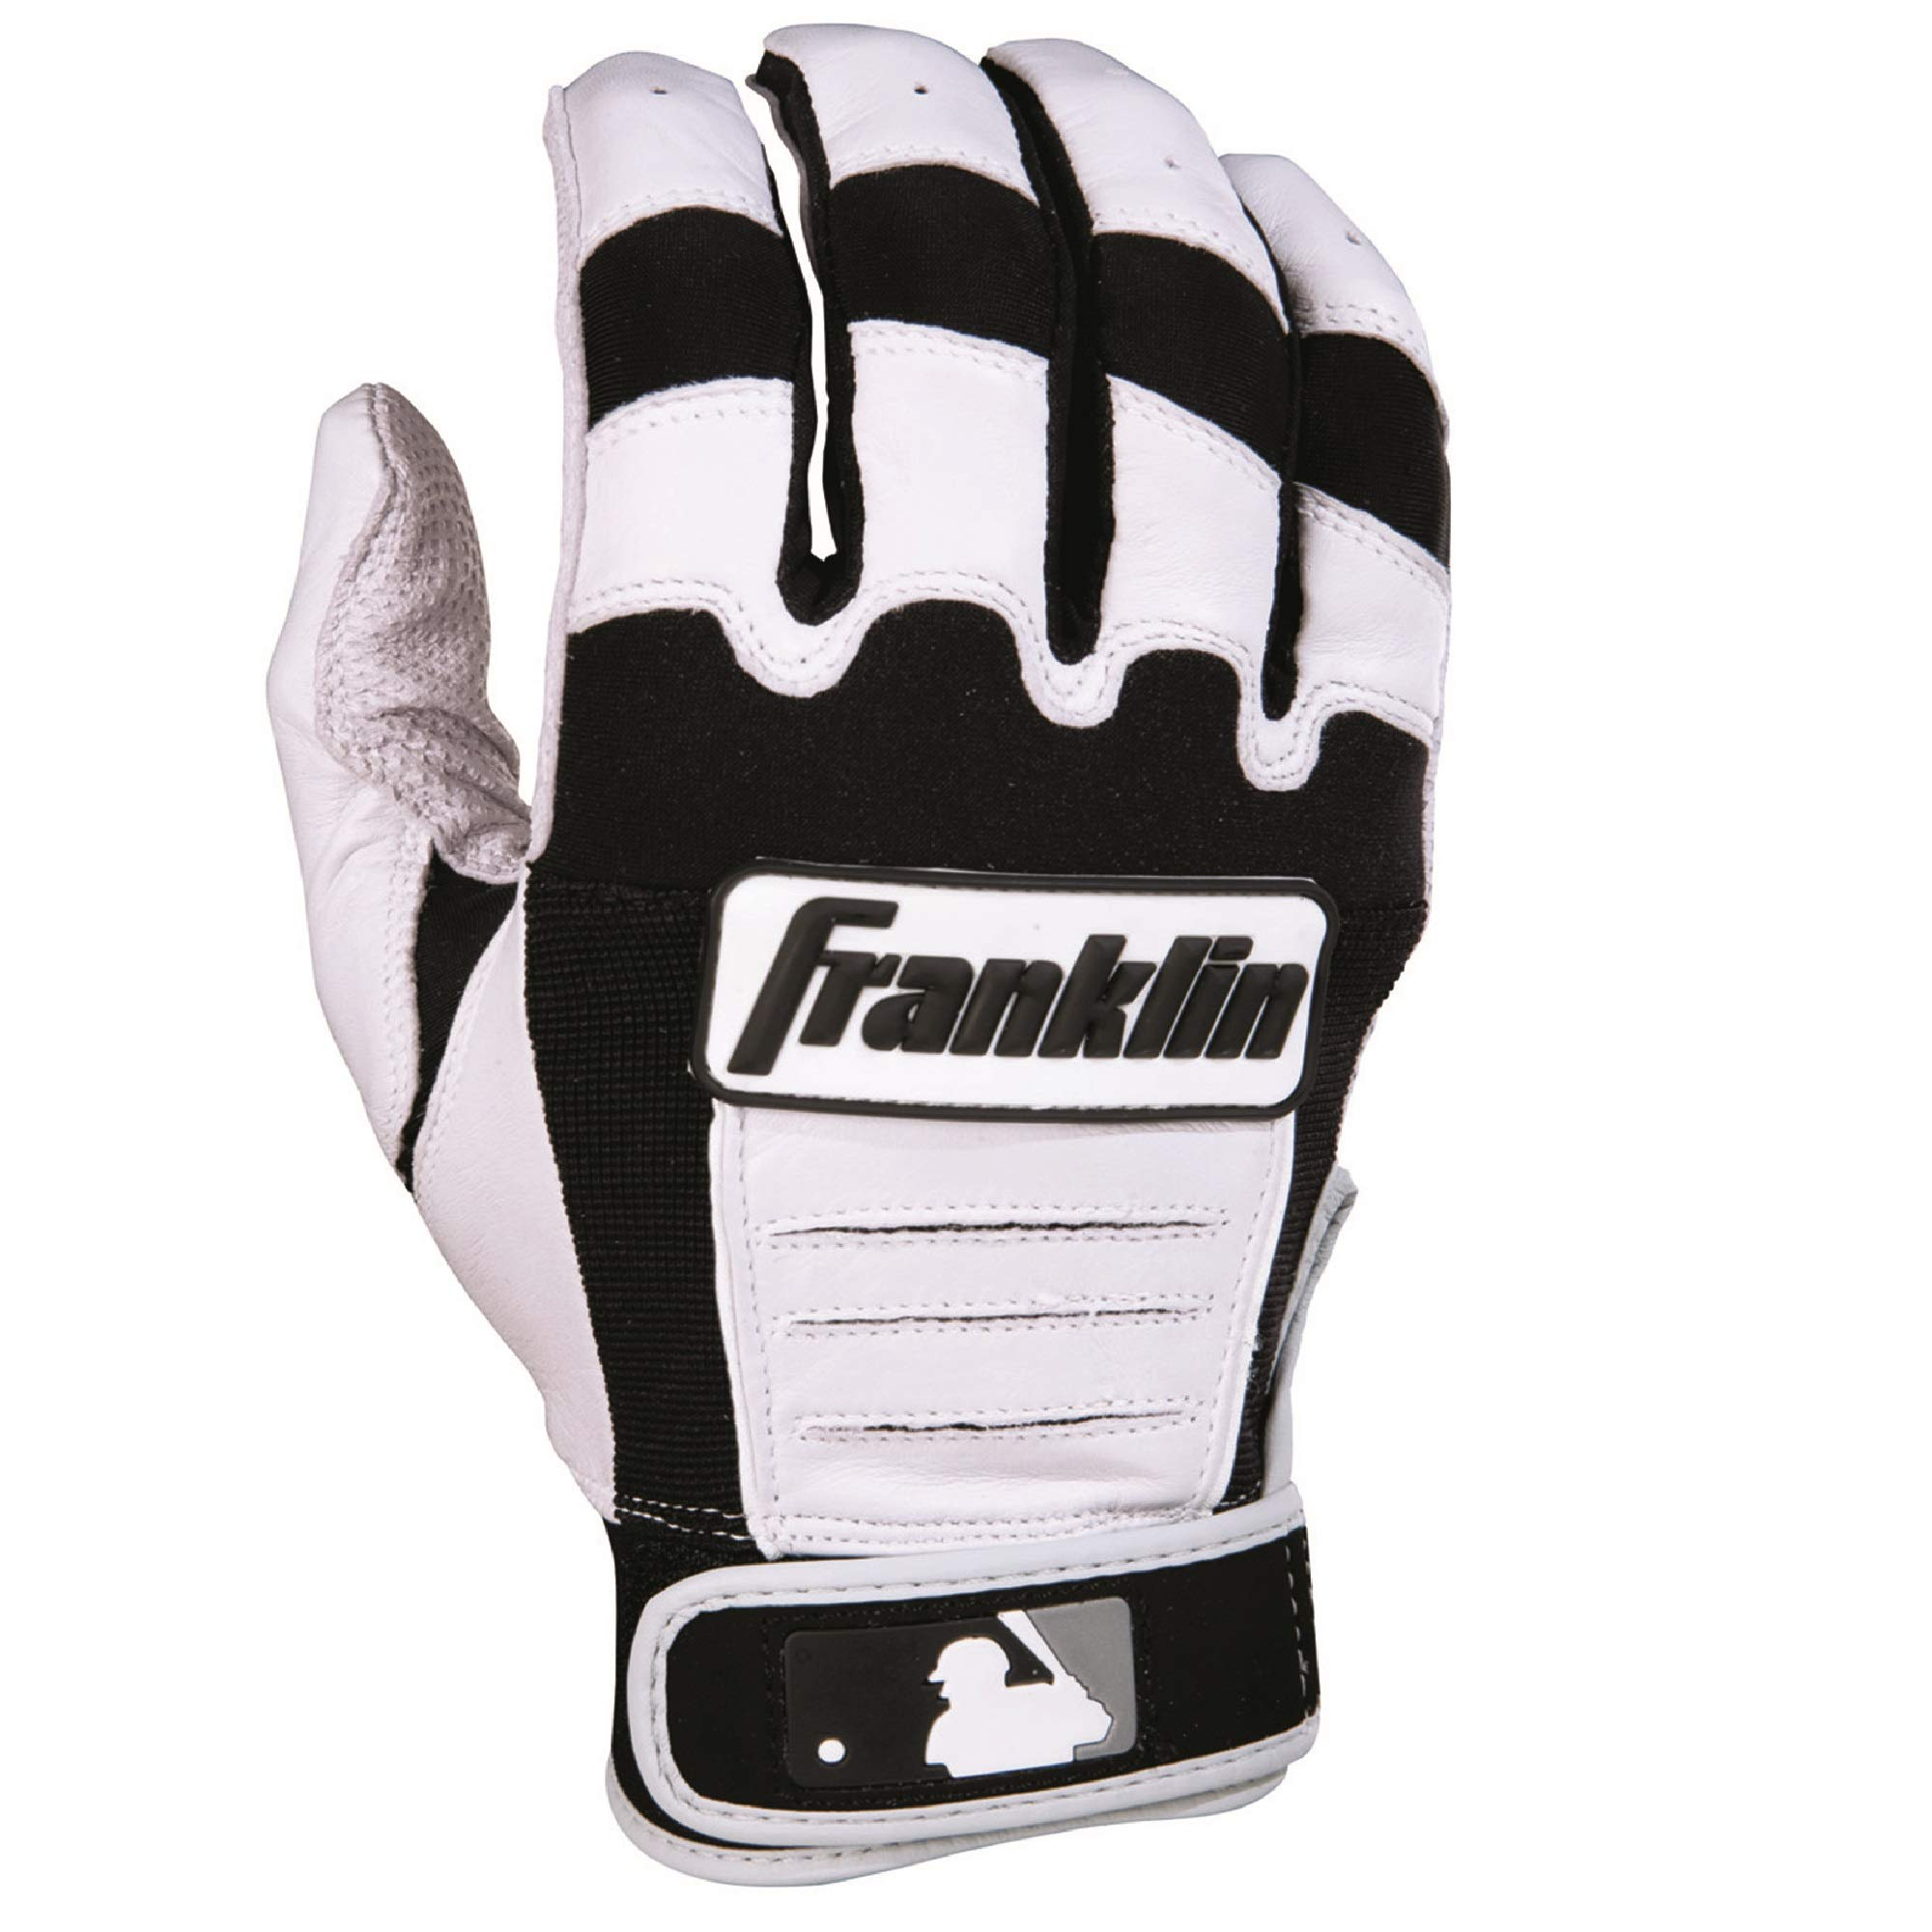 Franklin Sports CFX Pro Adult Series Batting Glove by Franklin Sports (Image #2)